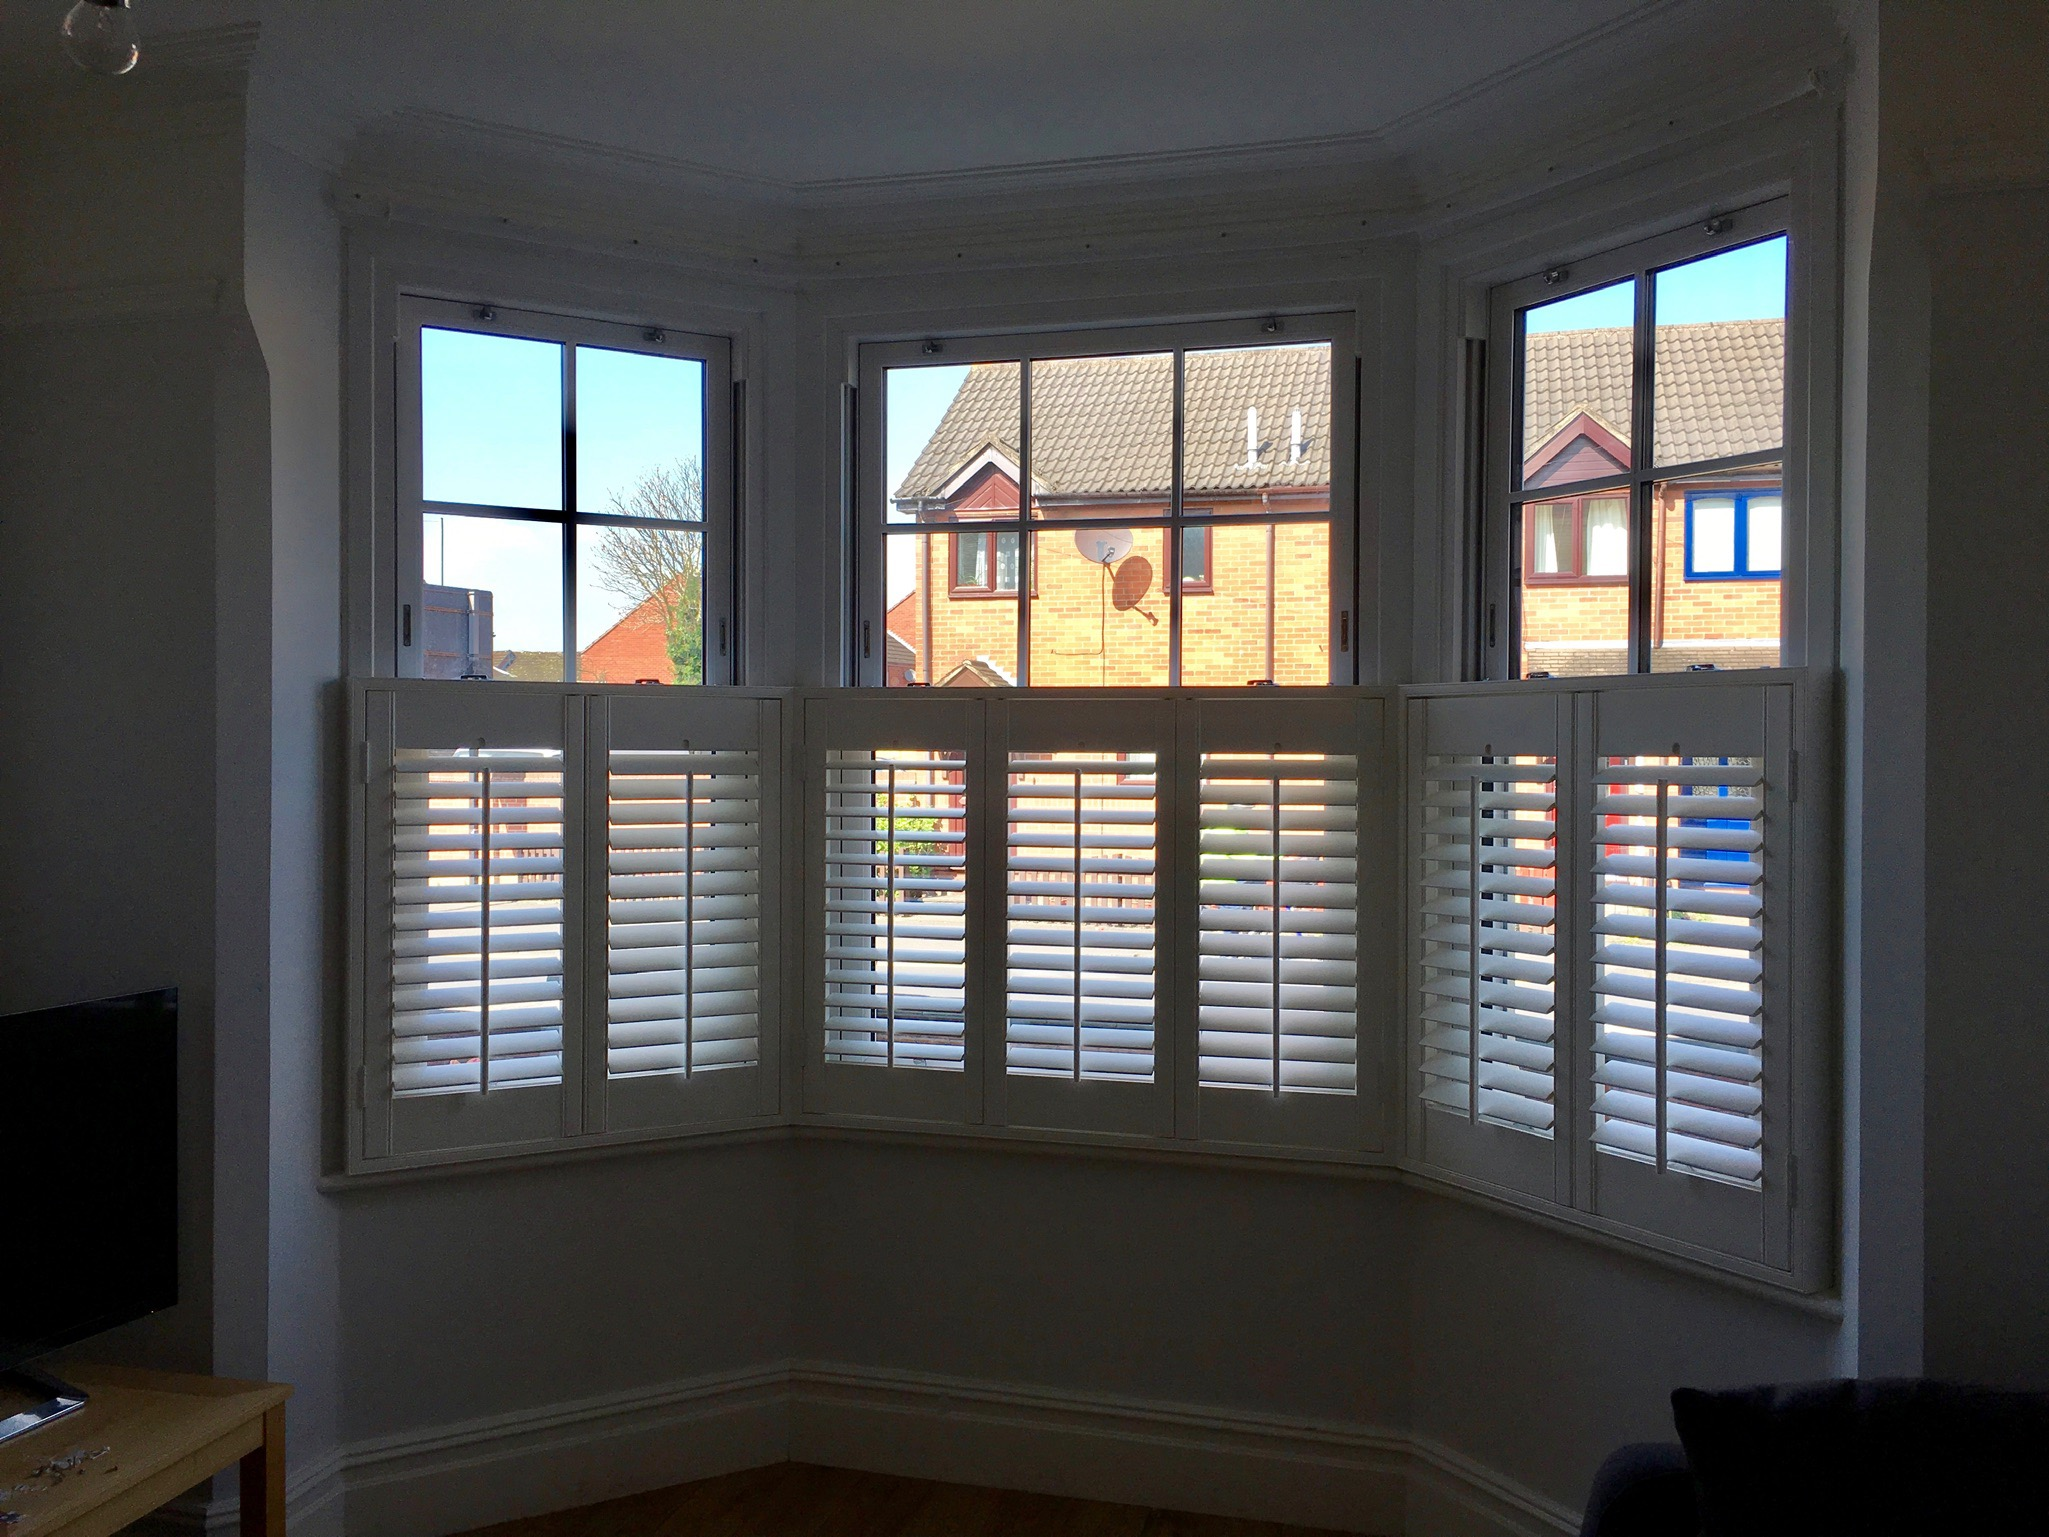 examples of shutters - cafe style